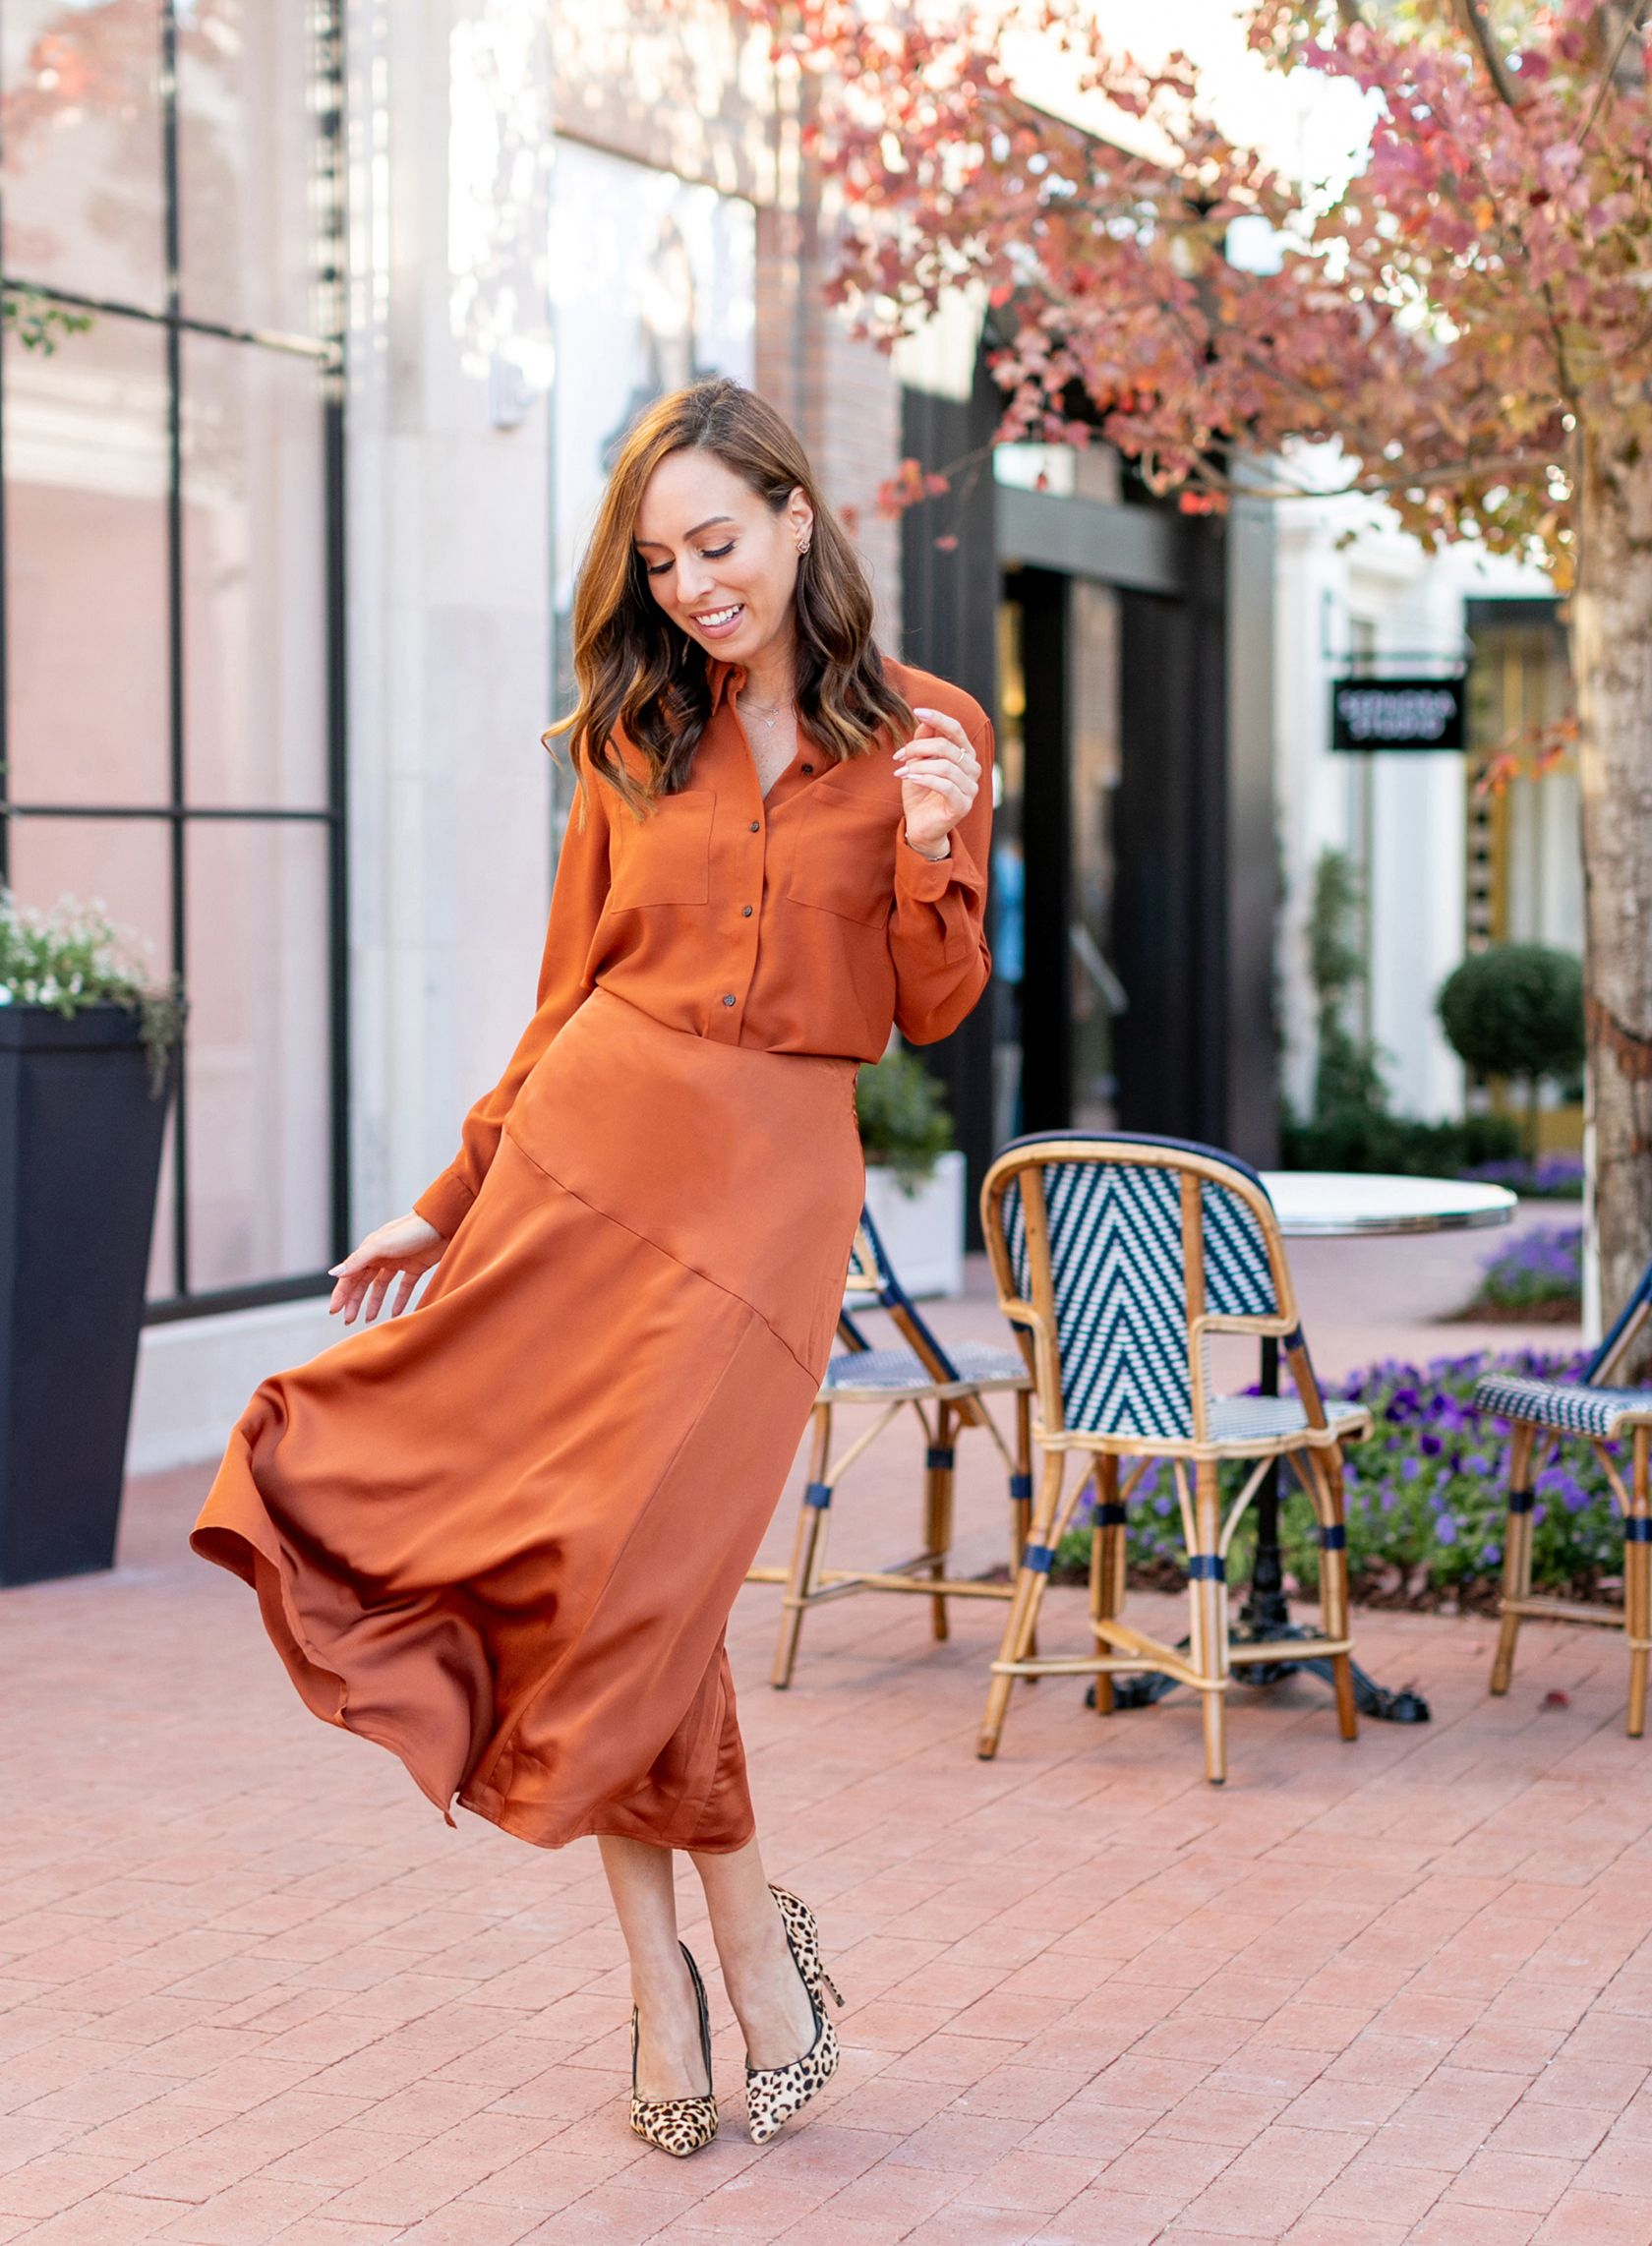 3dc93ca453 Sydne Style shows work outfit ideas in button down shirt and slip skirt   rust  orange  silk  officeoutfits  sydnesummer